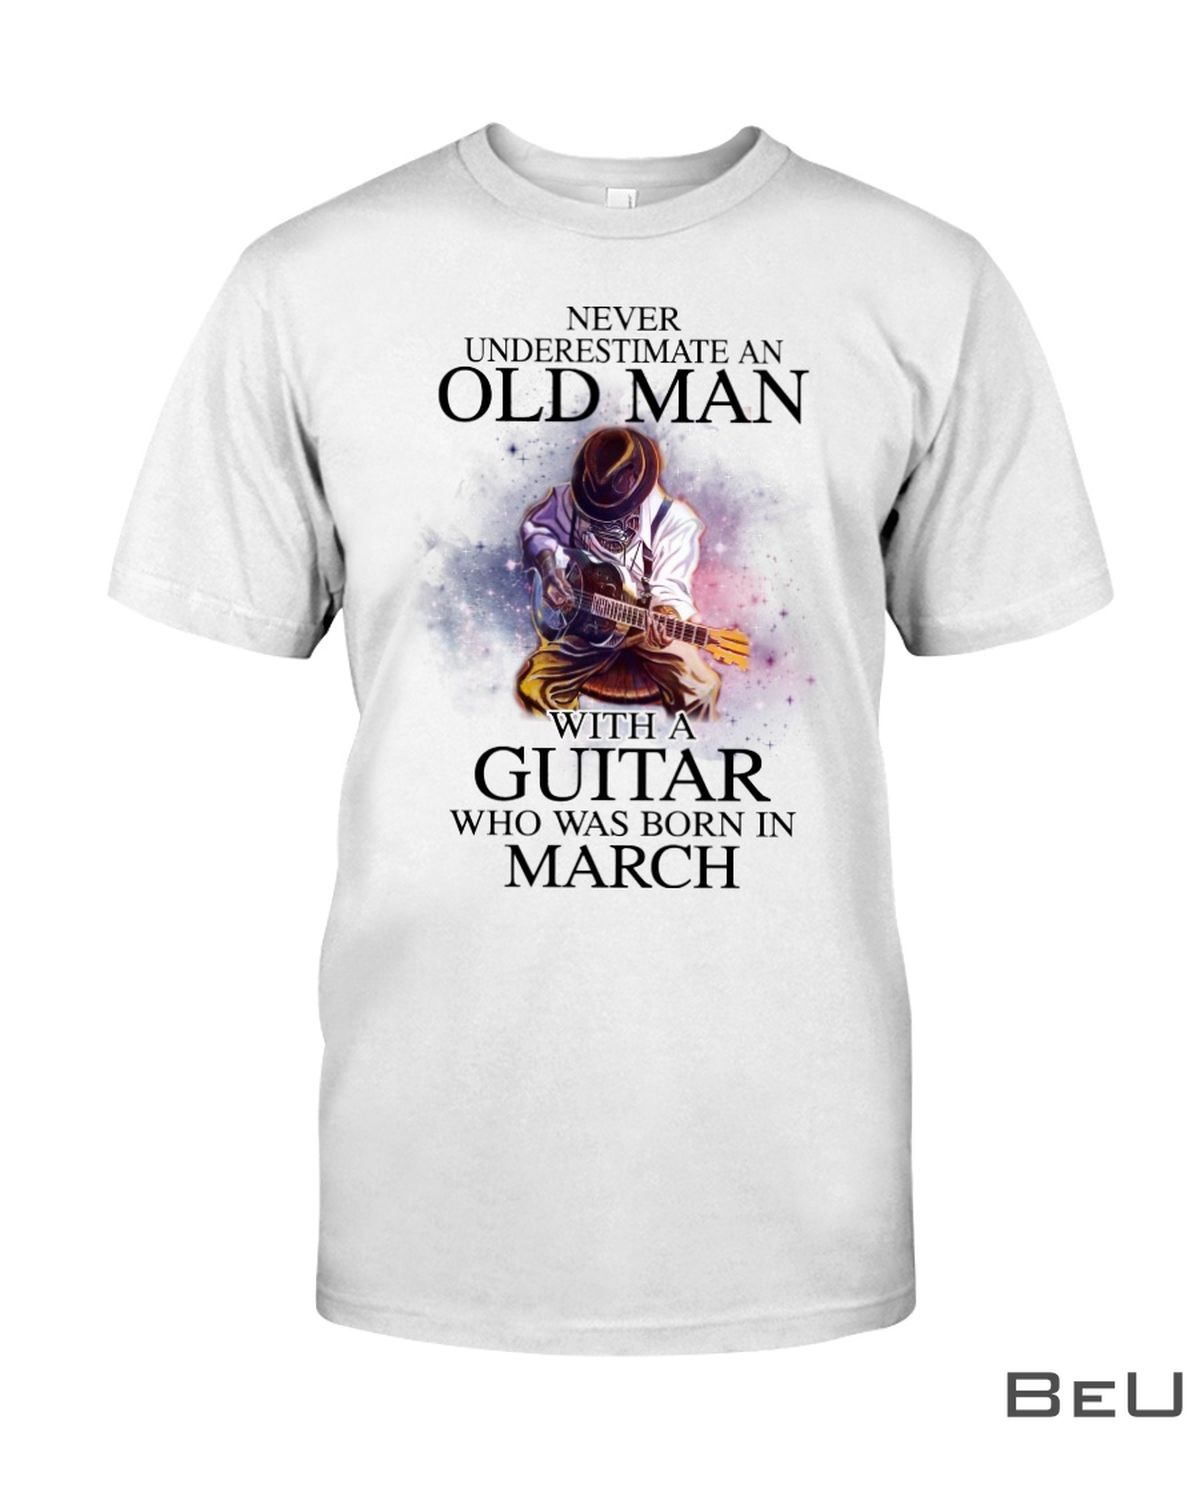 Never Underestimate An Old Man With A Guitar Who Was Born In March Shirt, hoodie, tank top